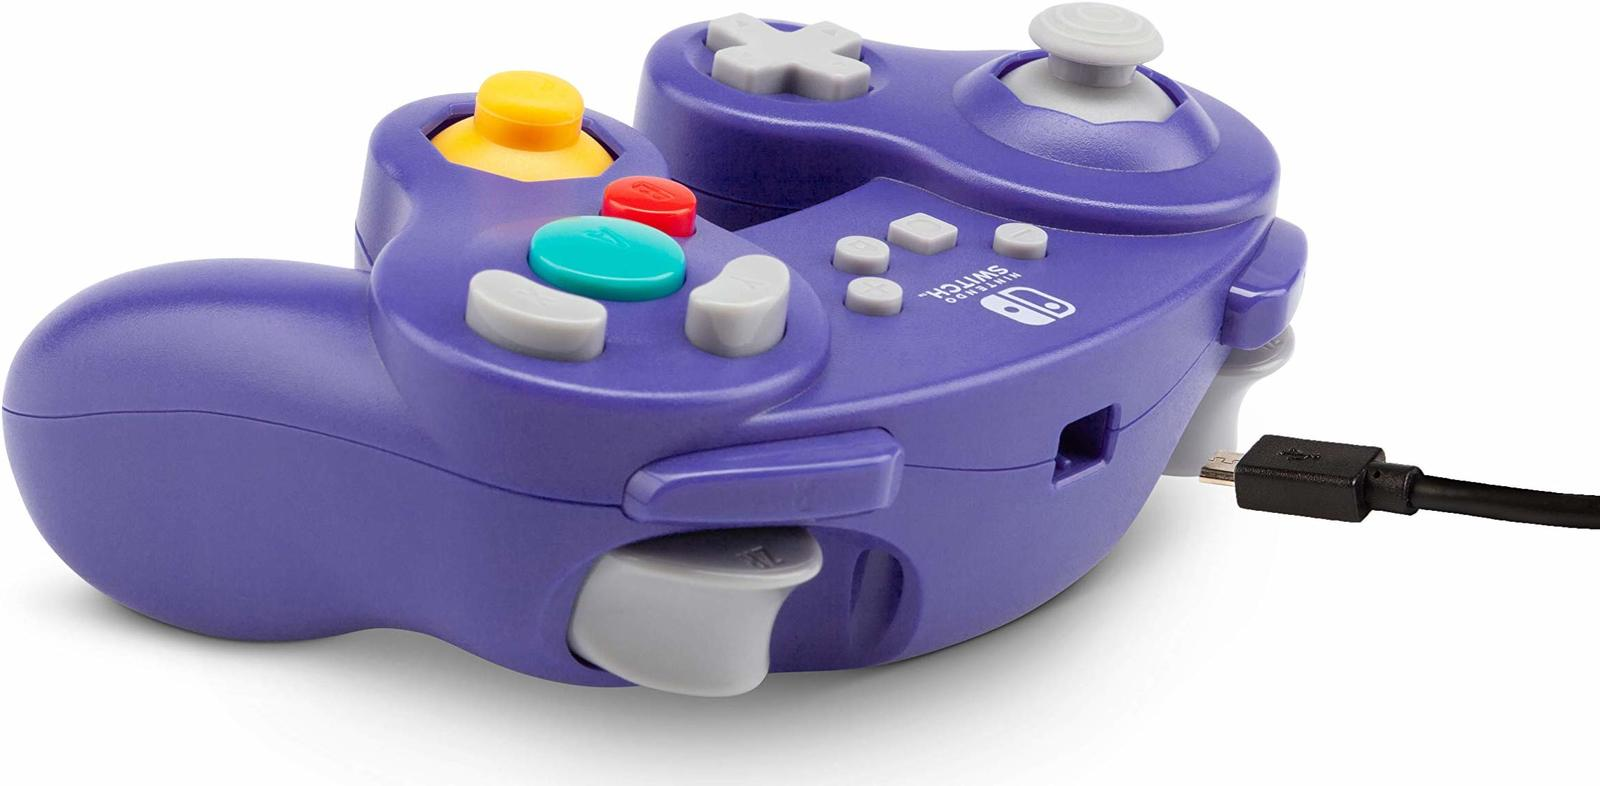 Nintendo Switch Wired GameCube Controller - Purple - Nintendo Switch